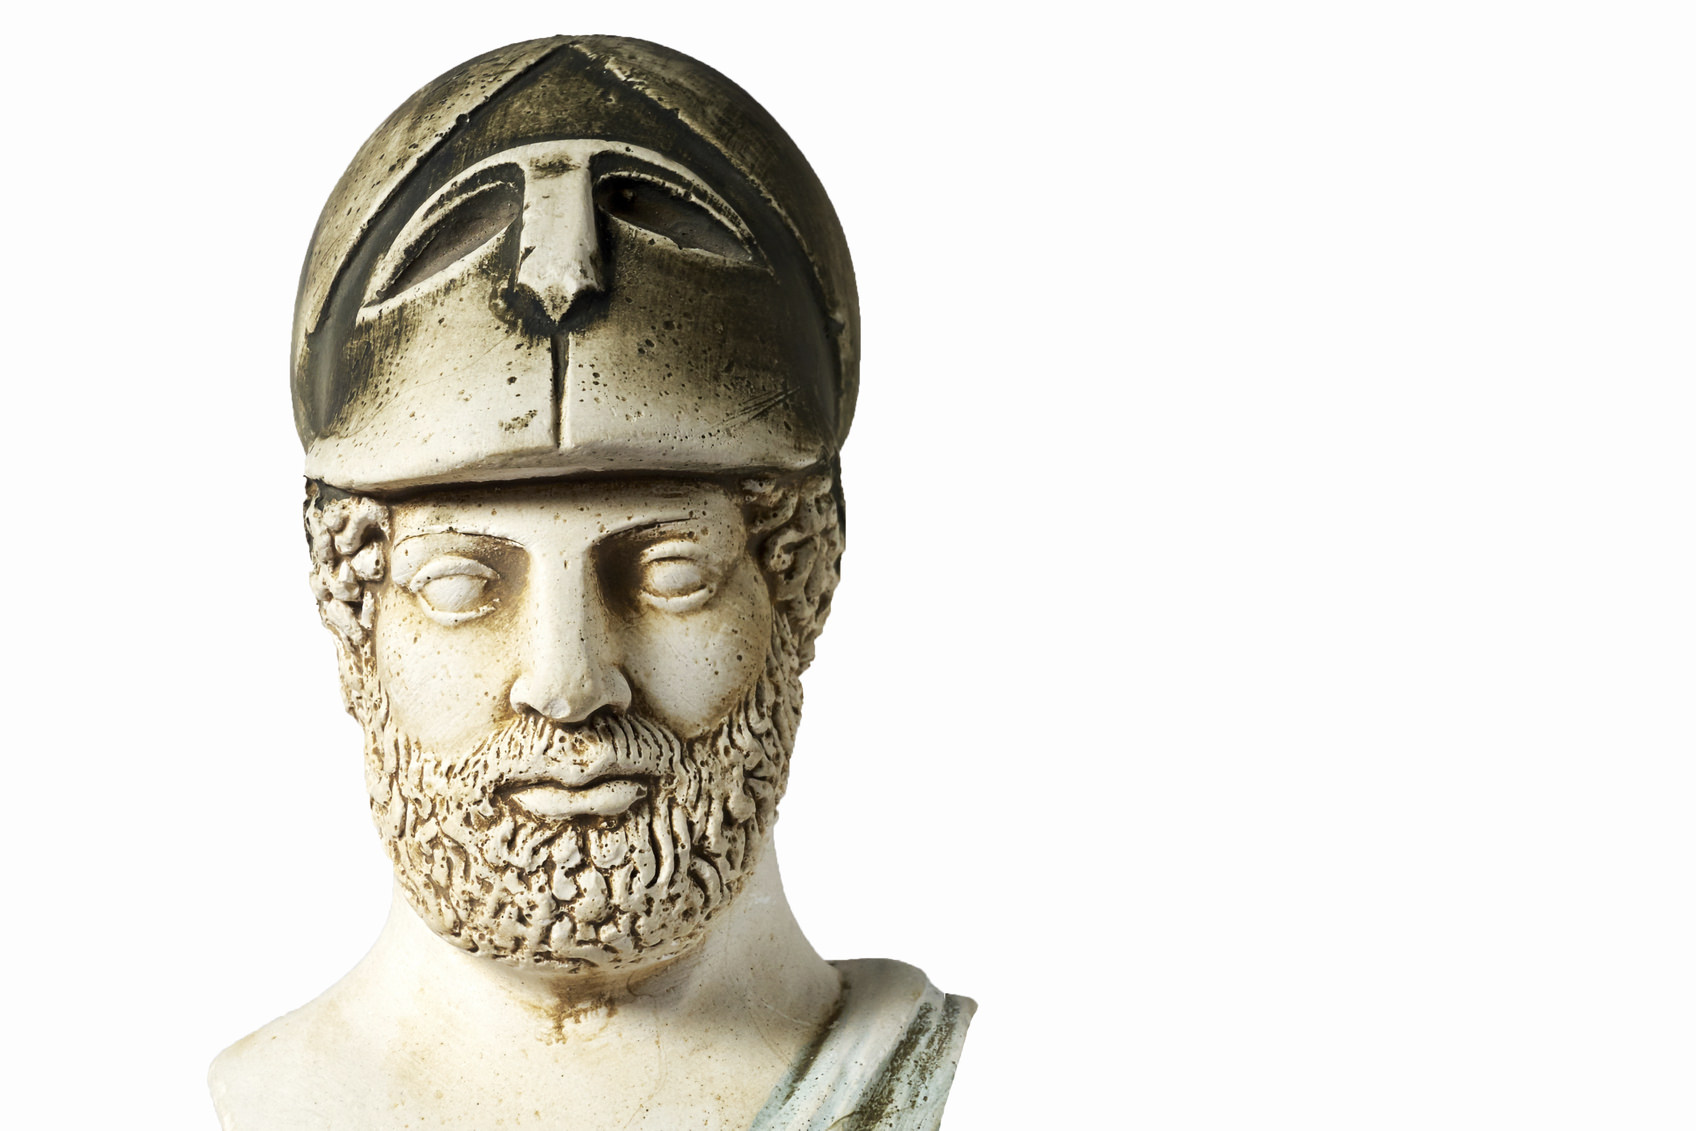 Pericles was Ancient Greek statesman, orator and general of Athens during the Golden Age. White marble bust of him on white background